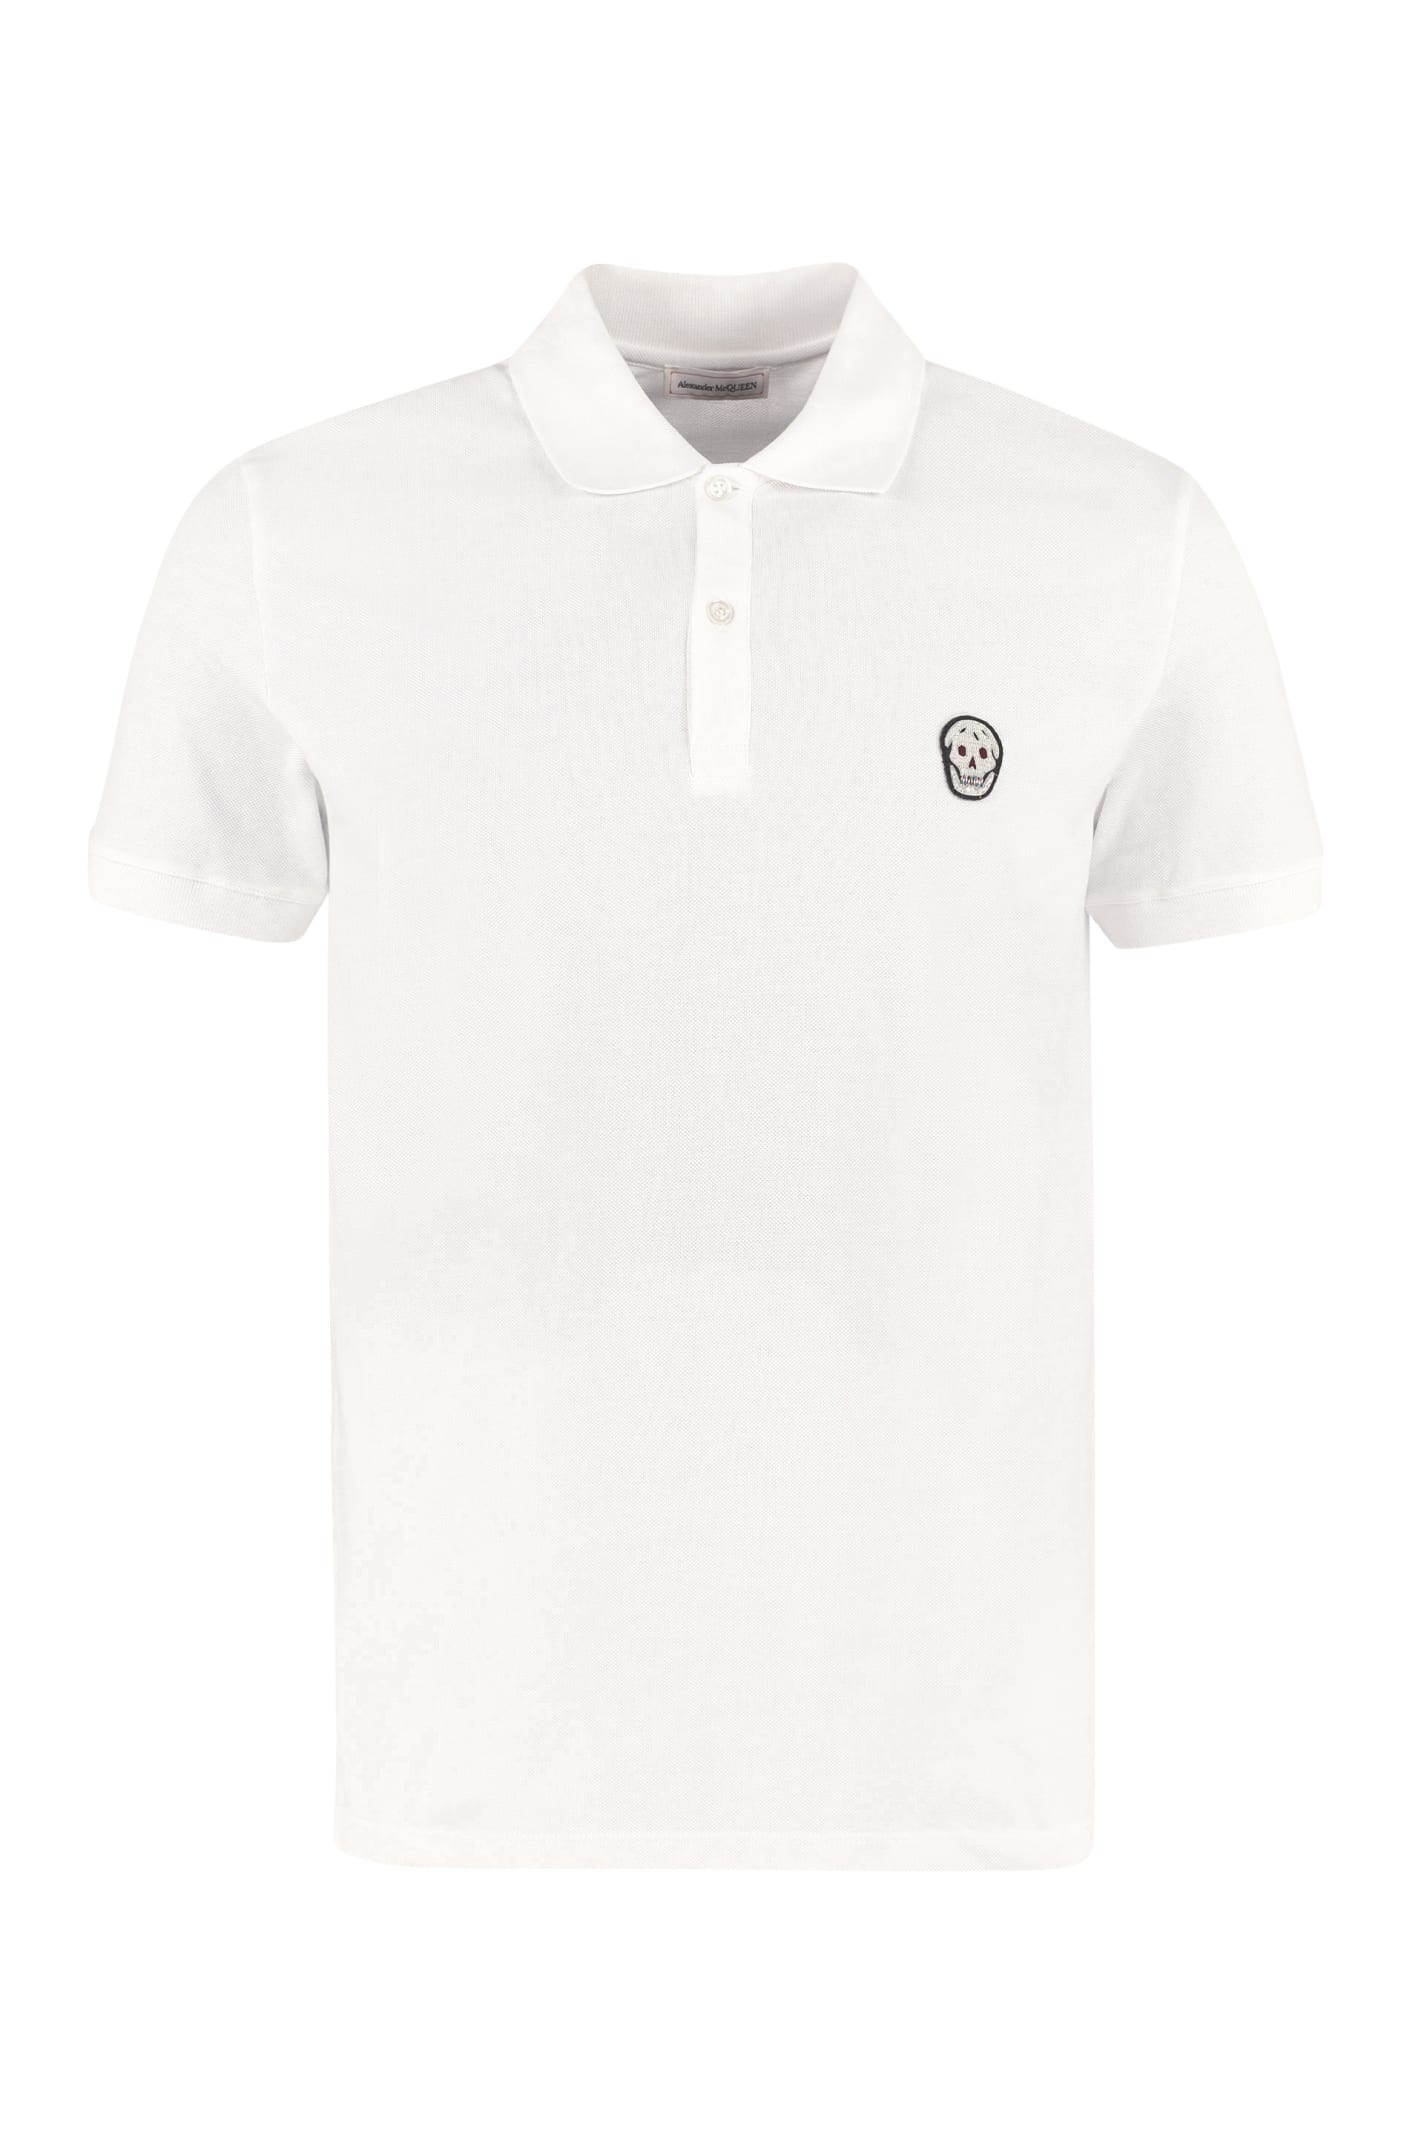 Alexander Mcqueen Cotton-piqué Polo Shirt In Black